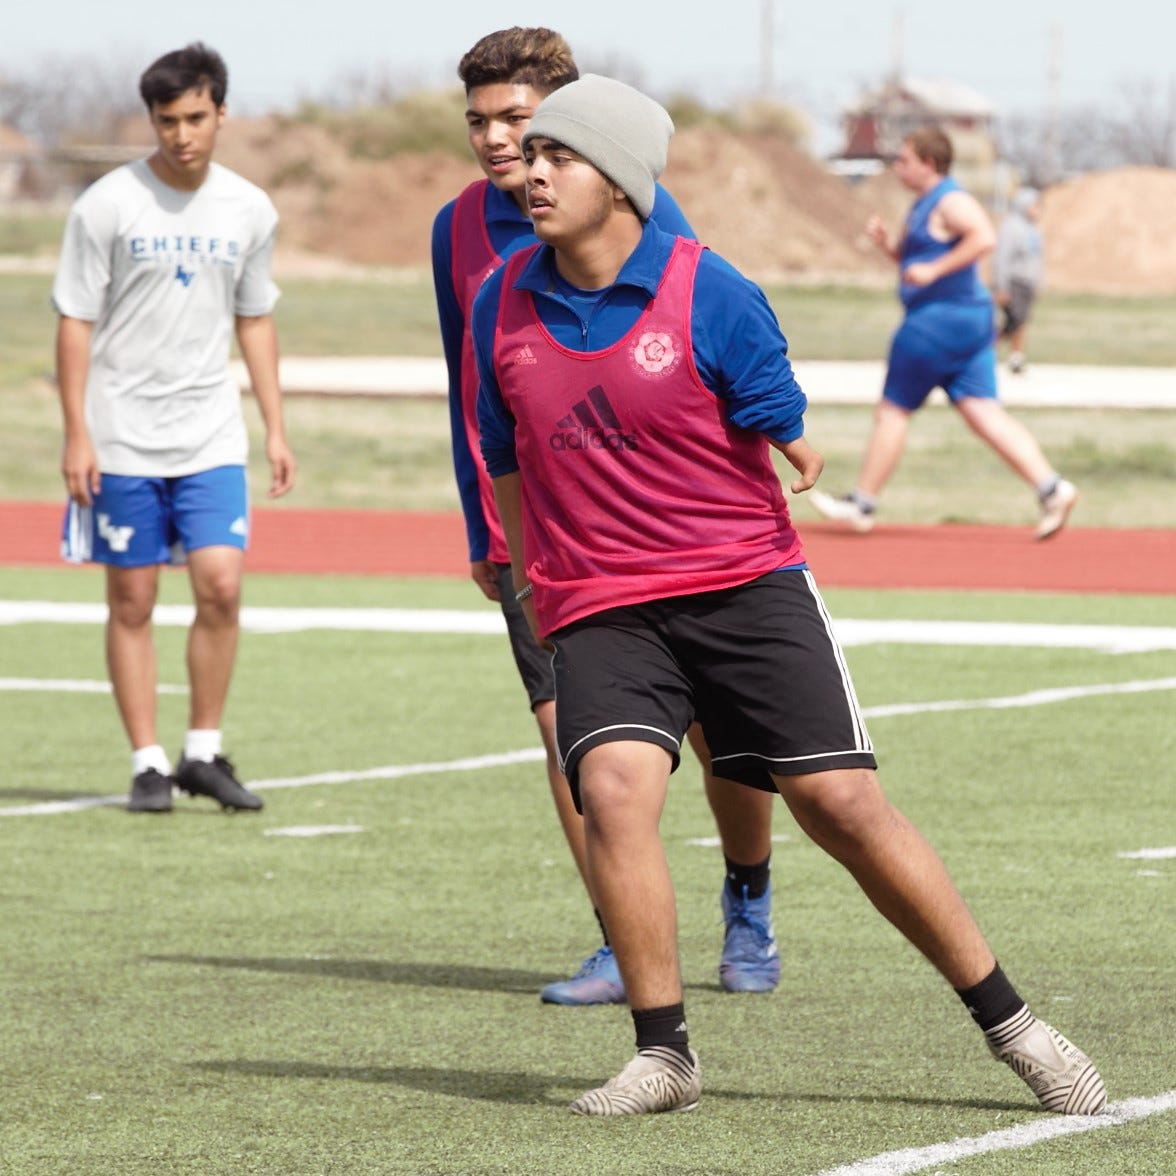 San Angelo Lake View soccer player De La Torre overcomes disability, excels on field